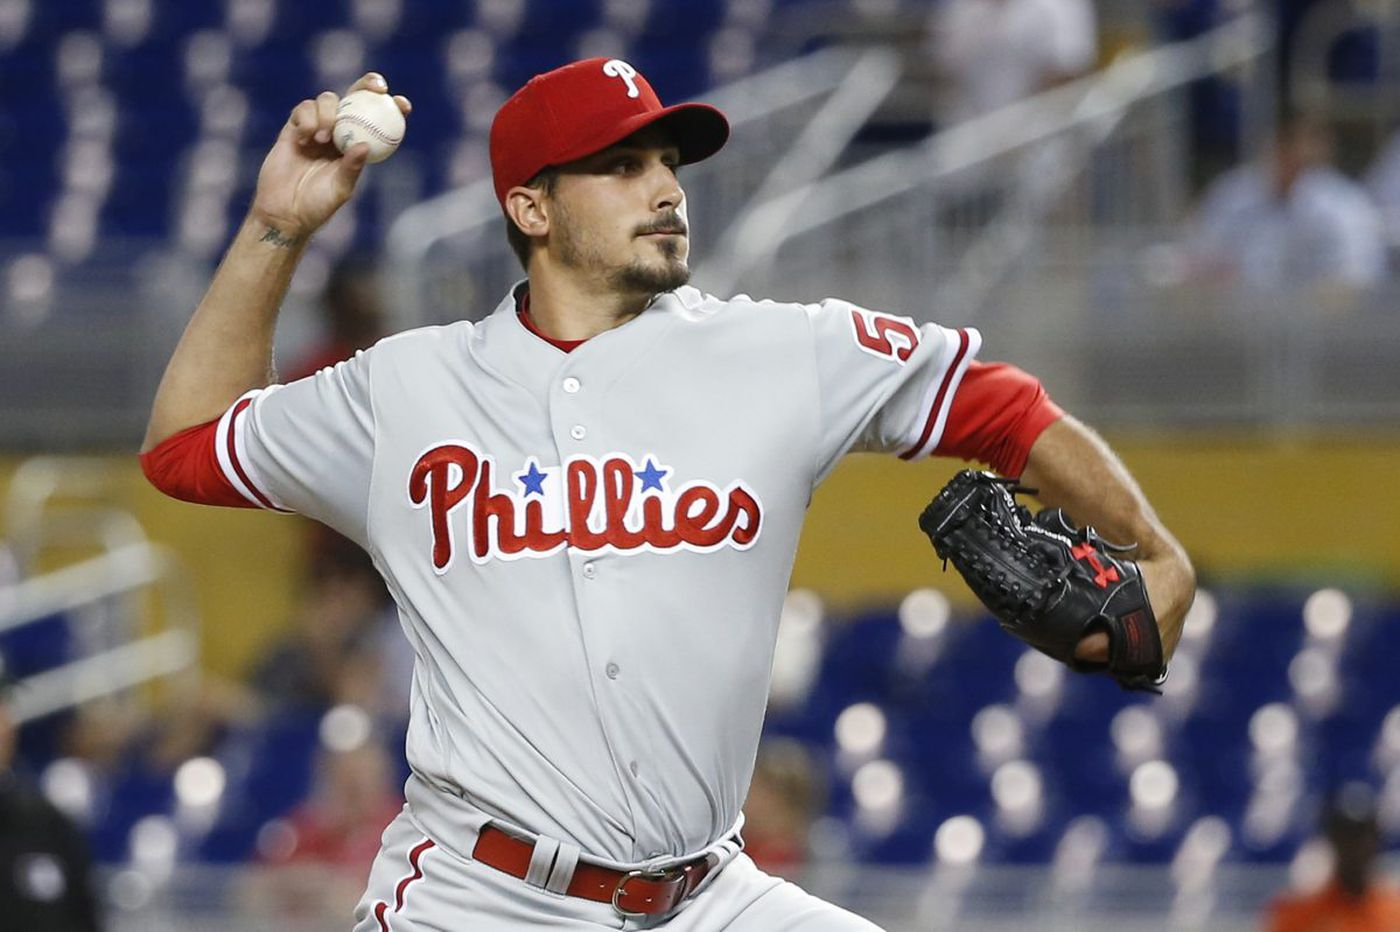 Phillies' bats silenced, Scott Kingery bruised in latest loss to Marlins